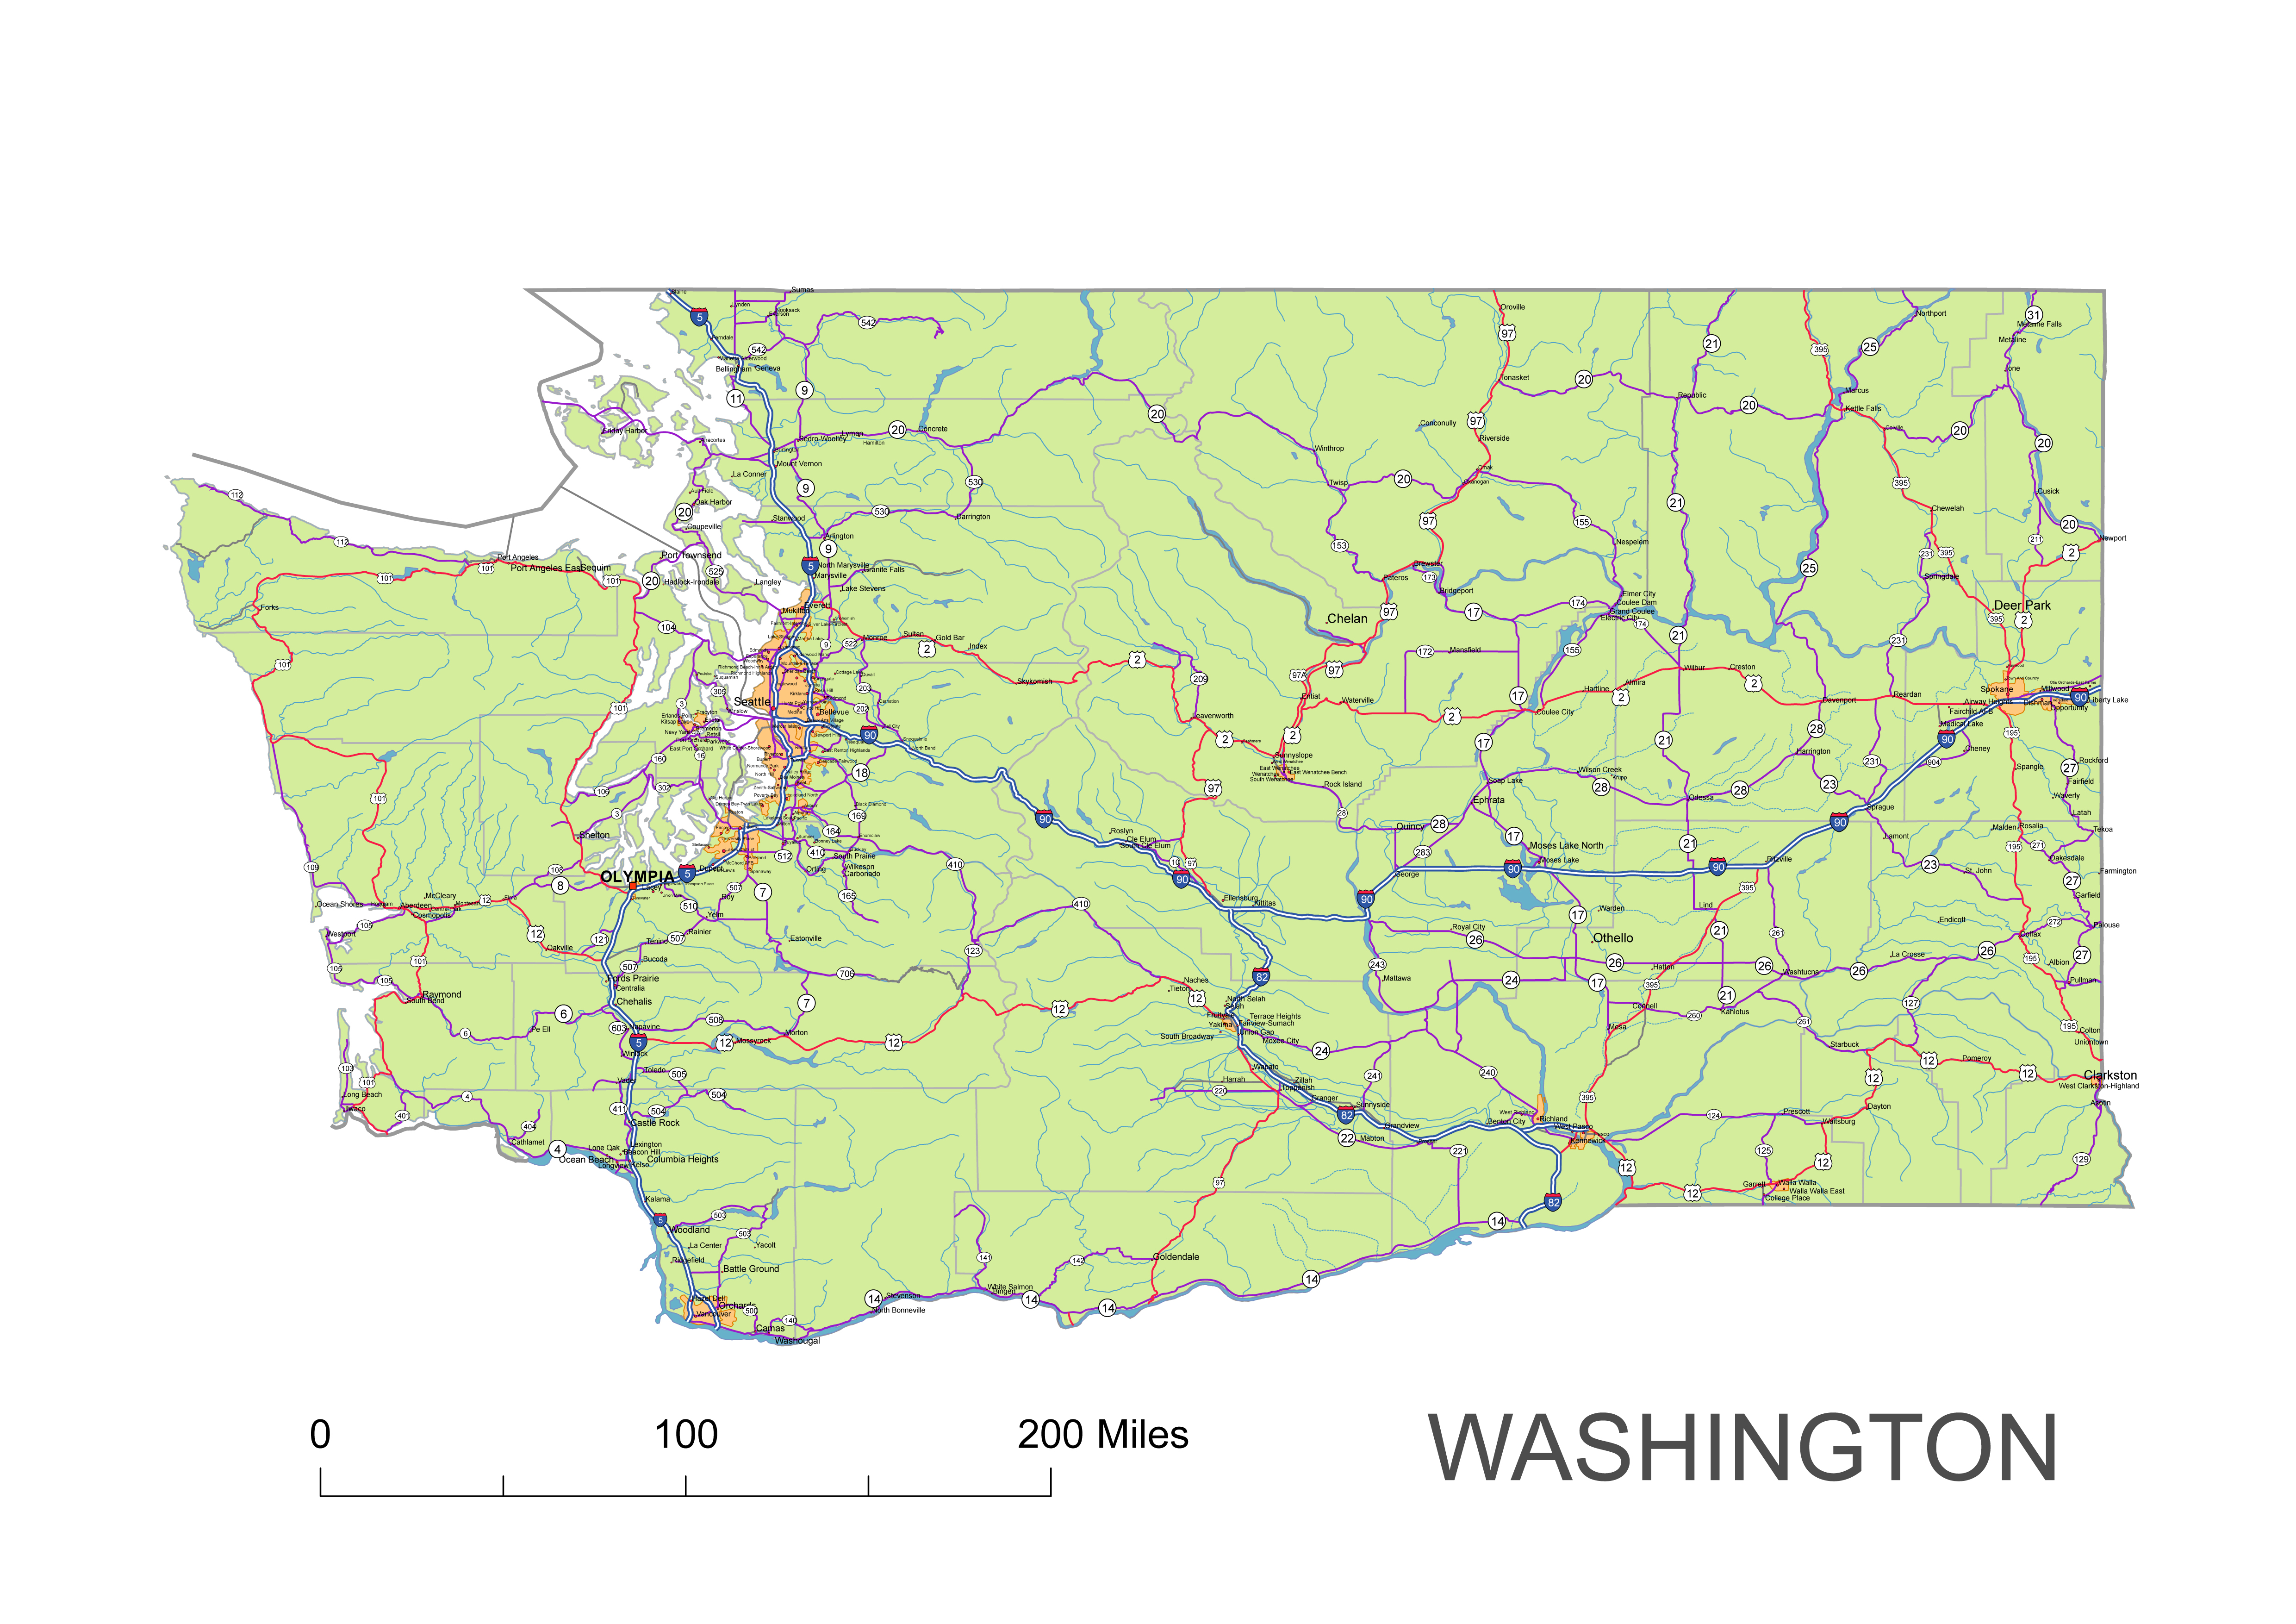 Picture of: Washington State Vector Road Map Lossless Scalable Ai Pdf Map For Printing Presentation